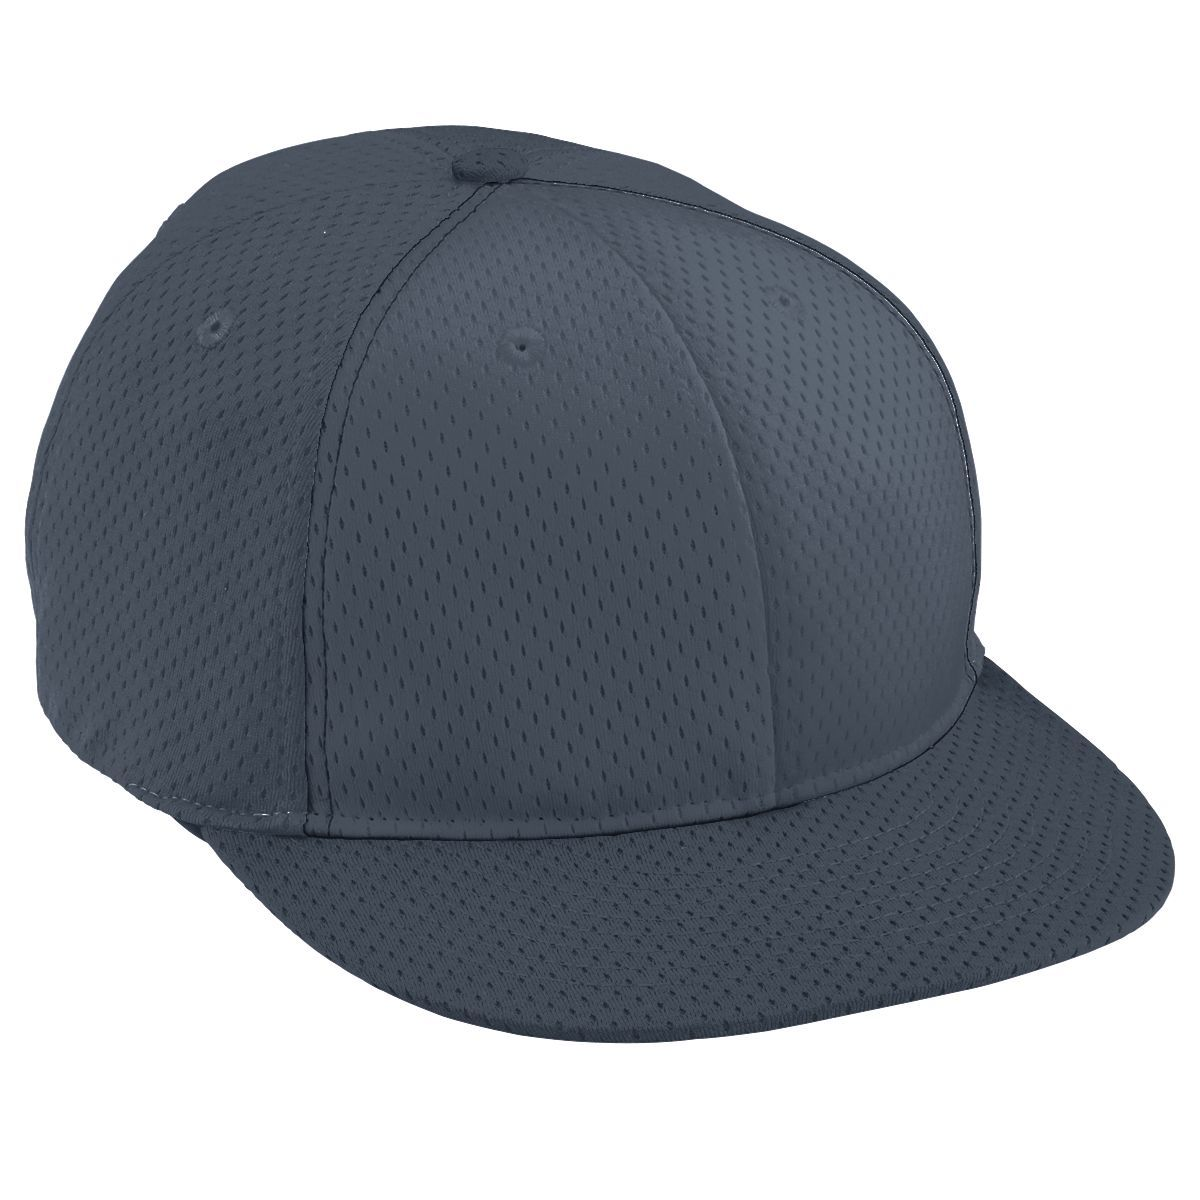 Youth Athletic Mesh Flat Bill Cap - GRAPHITE/GRAPHITE/GRAPHITE